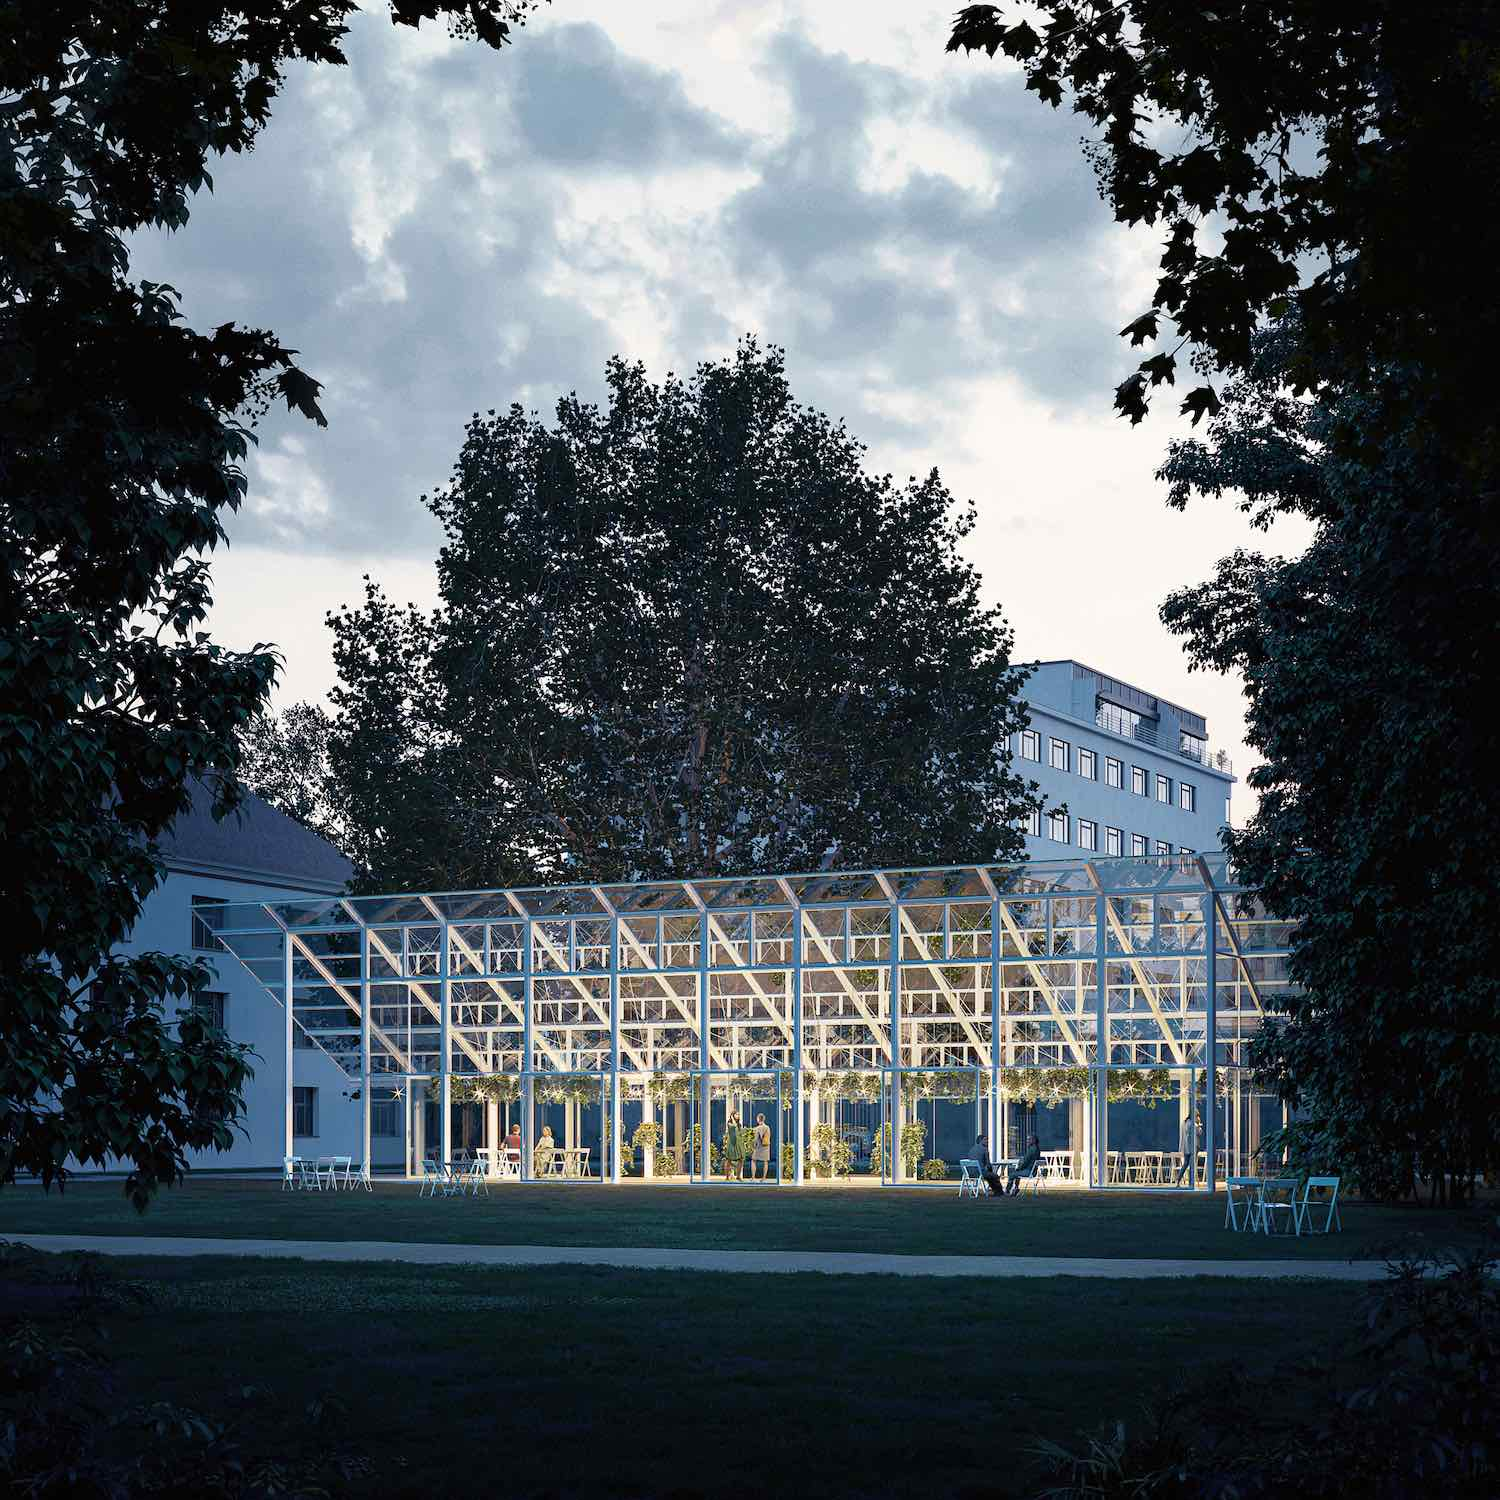 Mendel greenhouse - Chybik Kristof - image by monolot.